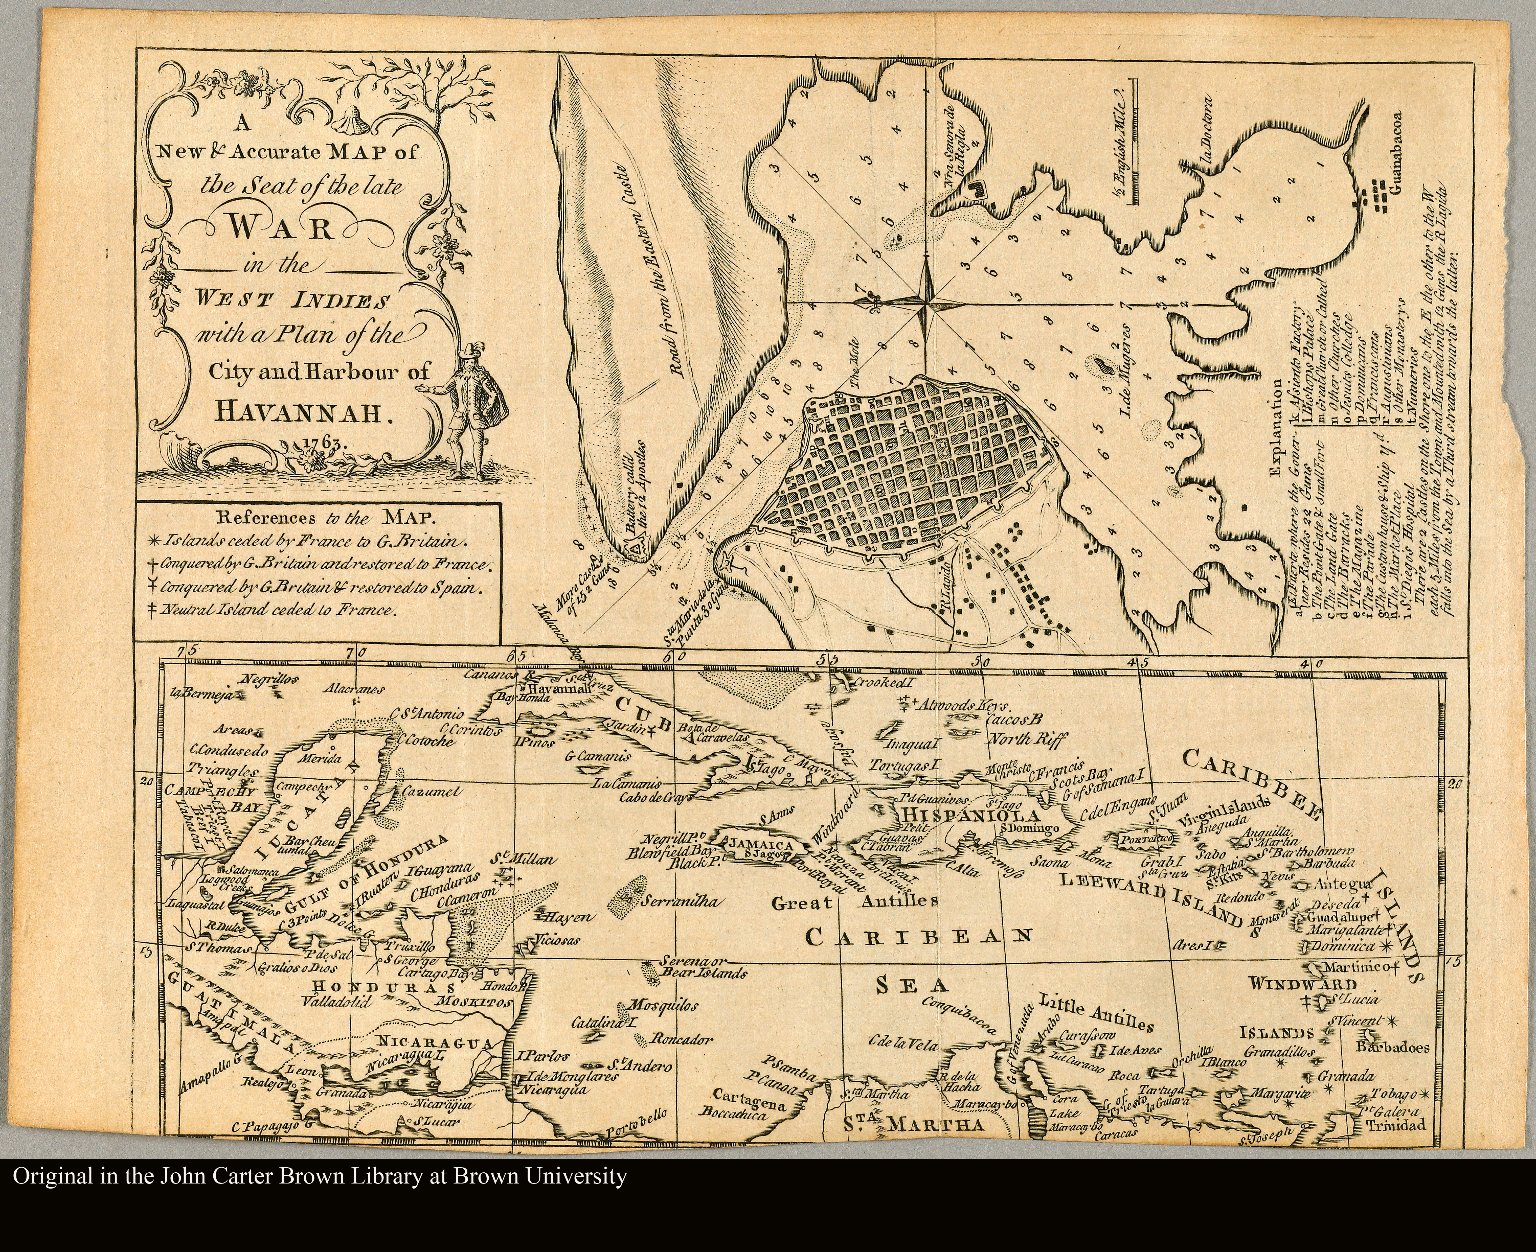 A new & accurate map of the seat of the Late War in the West Indies with a plan of the City and Harbour of Havannah